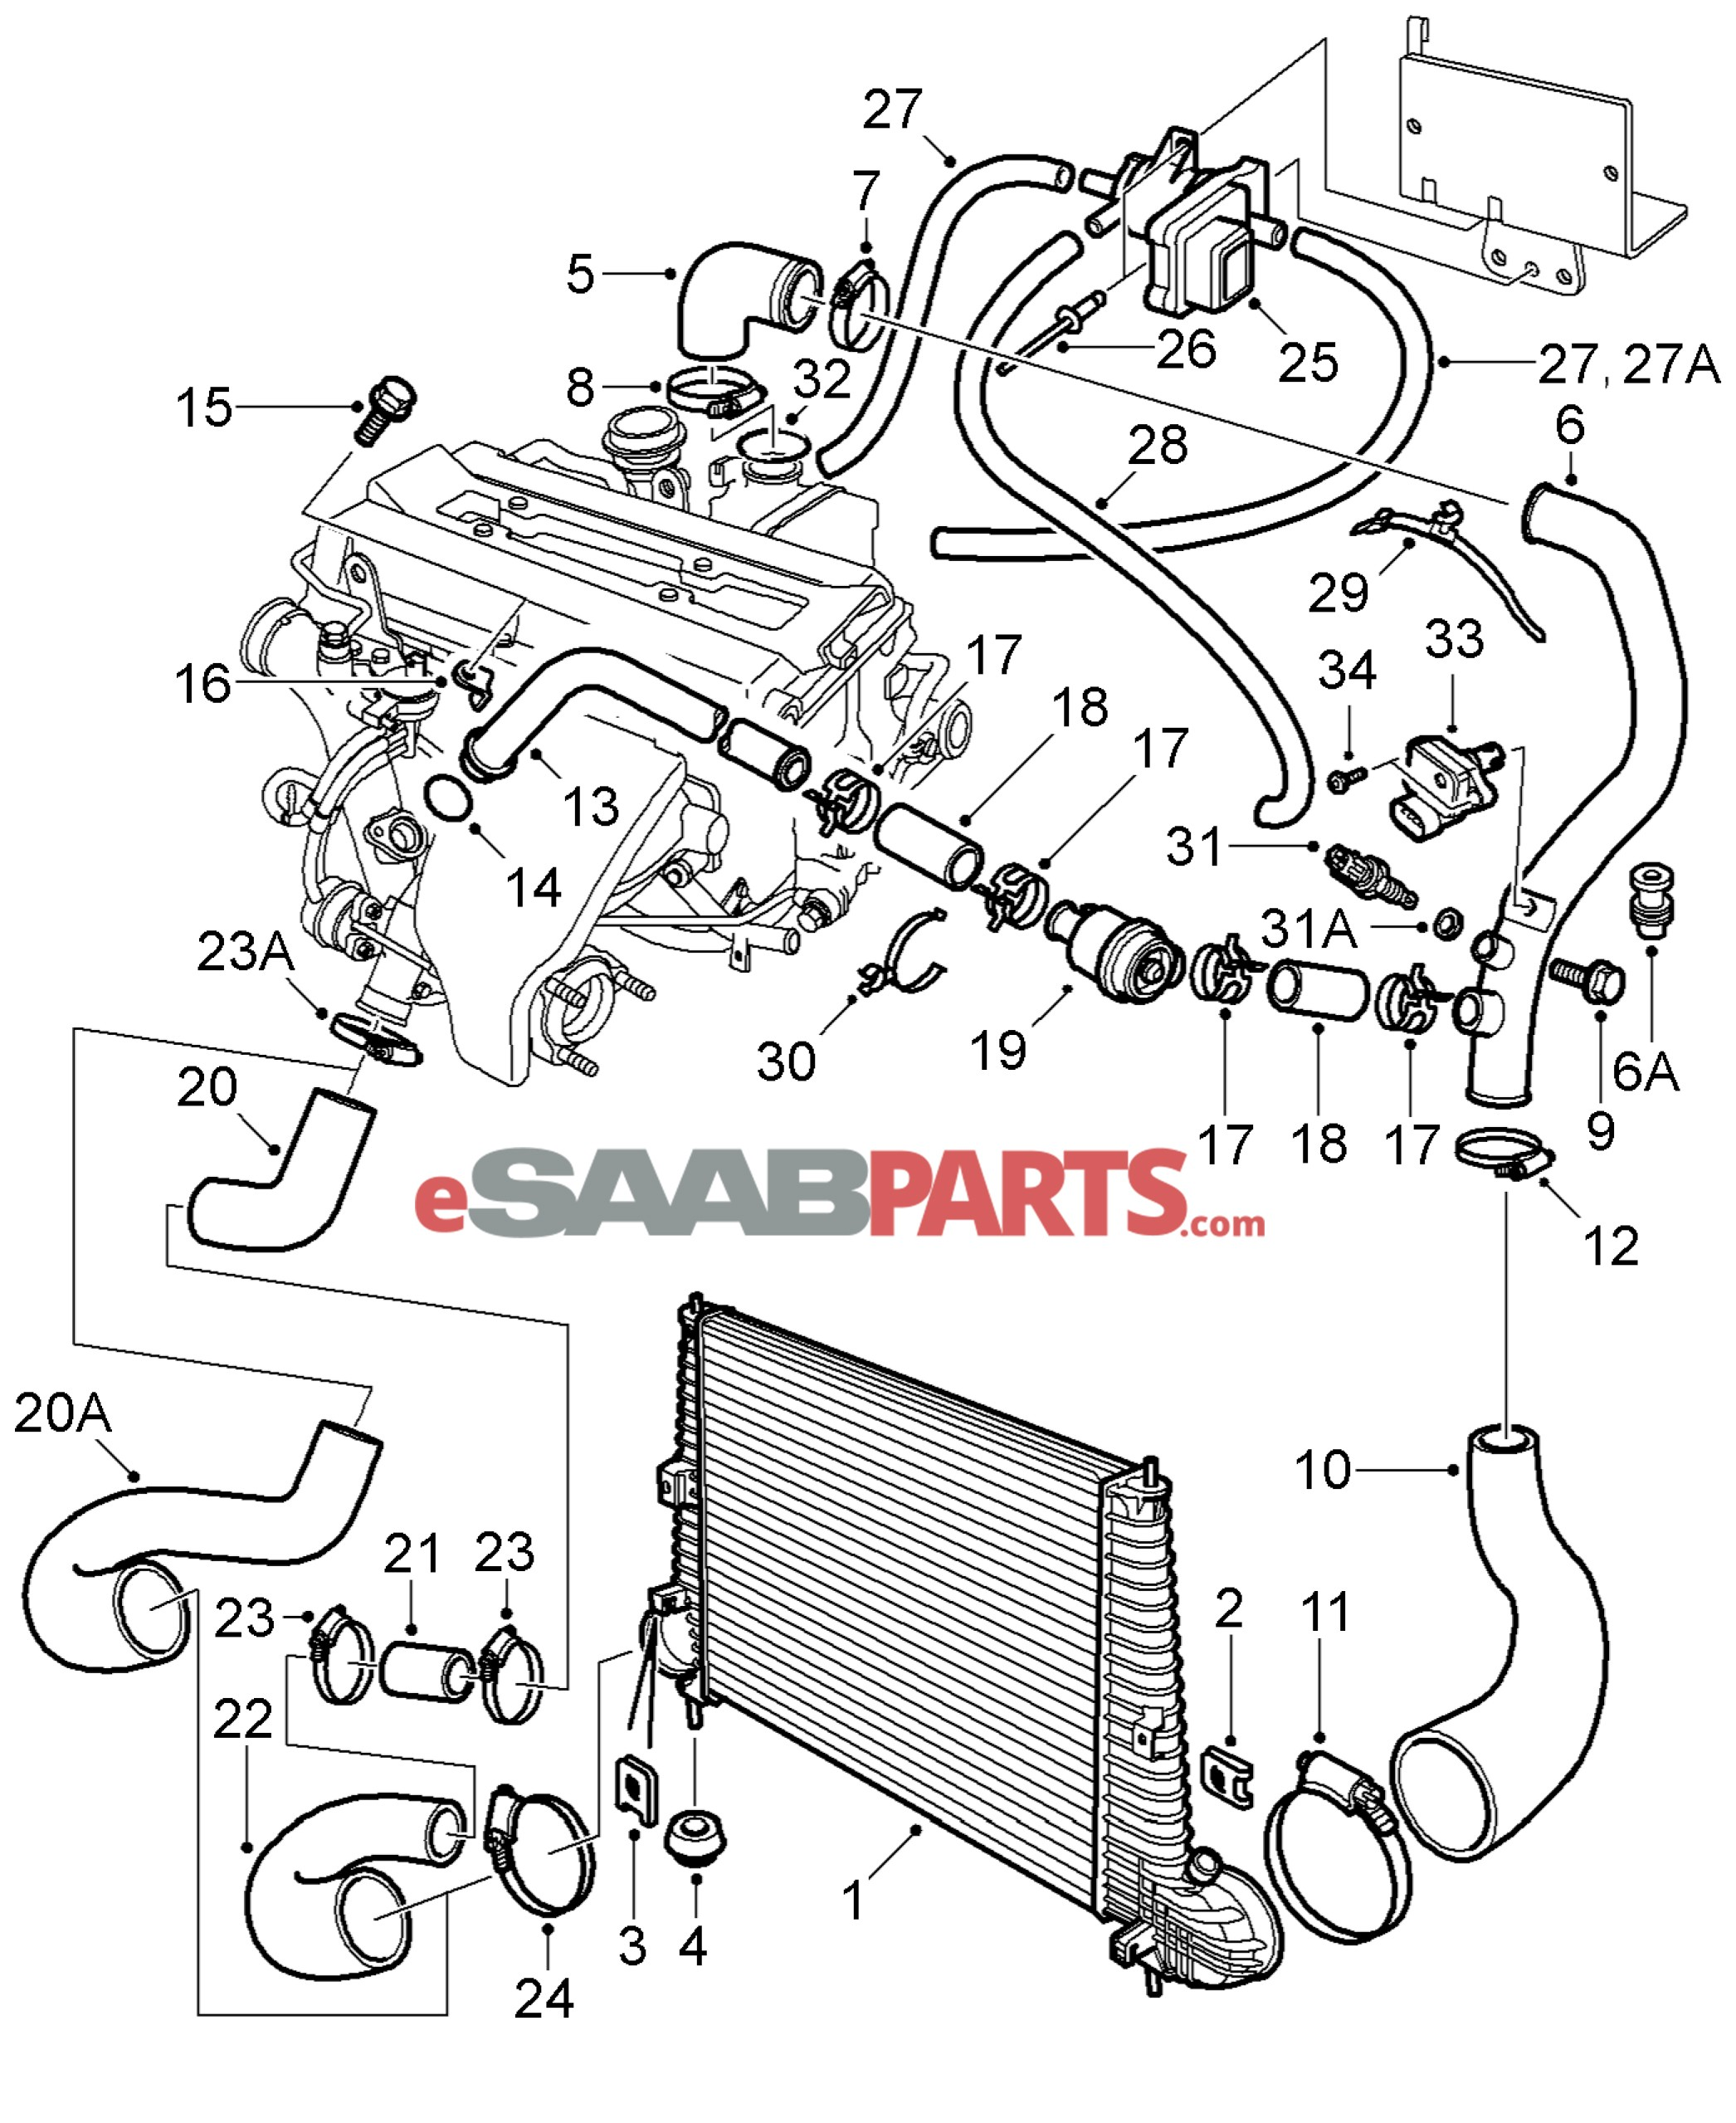 Land Rover Discovery 3 9 Wiring Diagram Schematics Diagrams 1997 Engine Vaccum Radio U2022 Rh Augmently Co 97 1